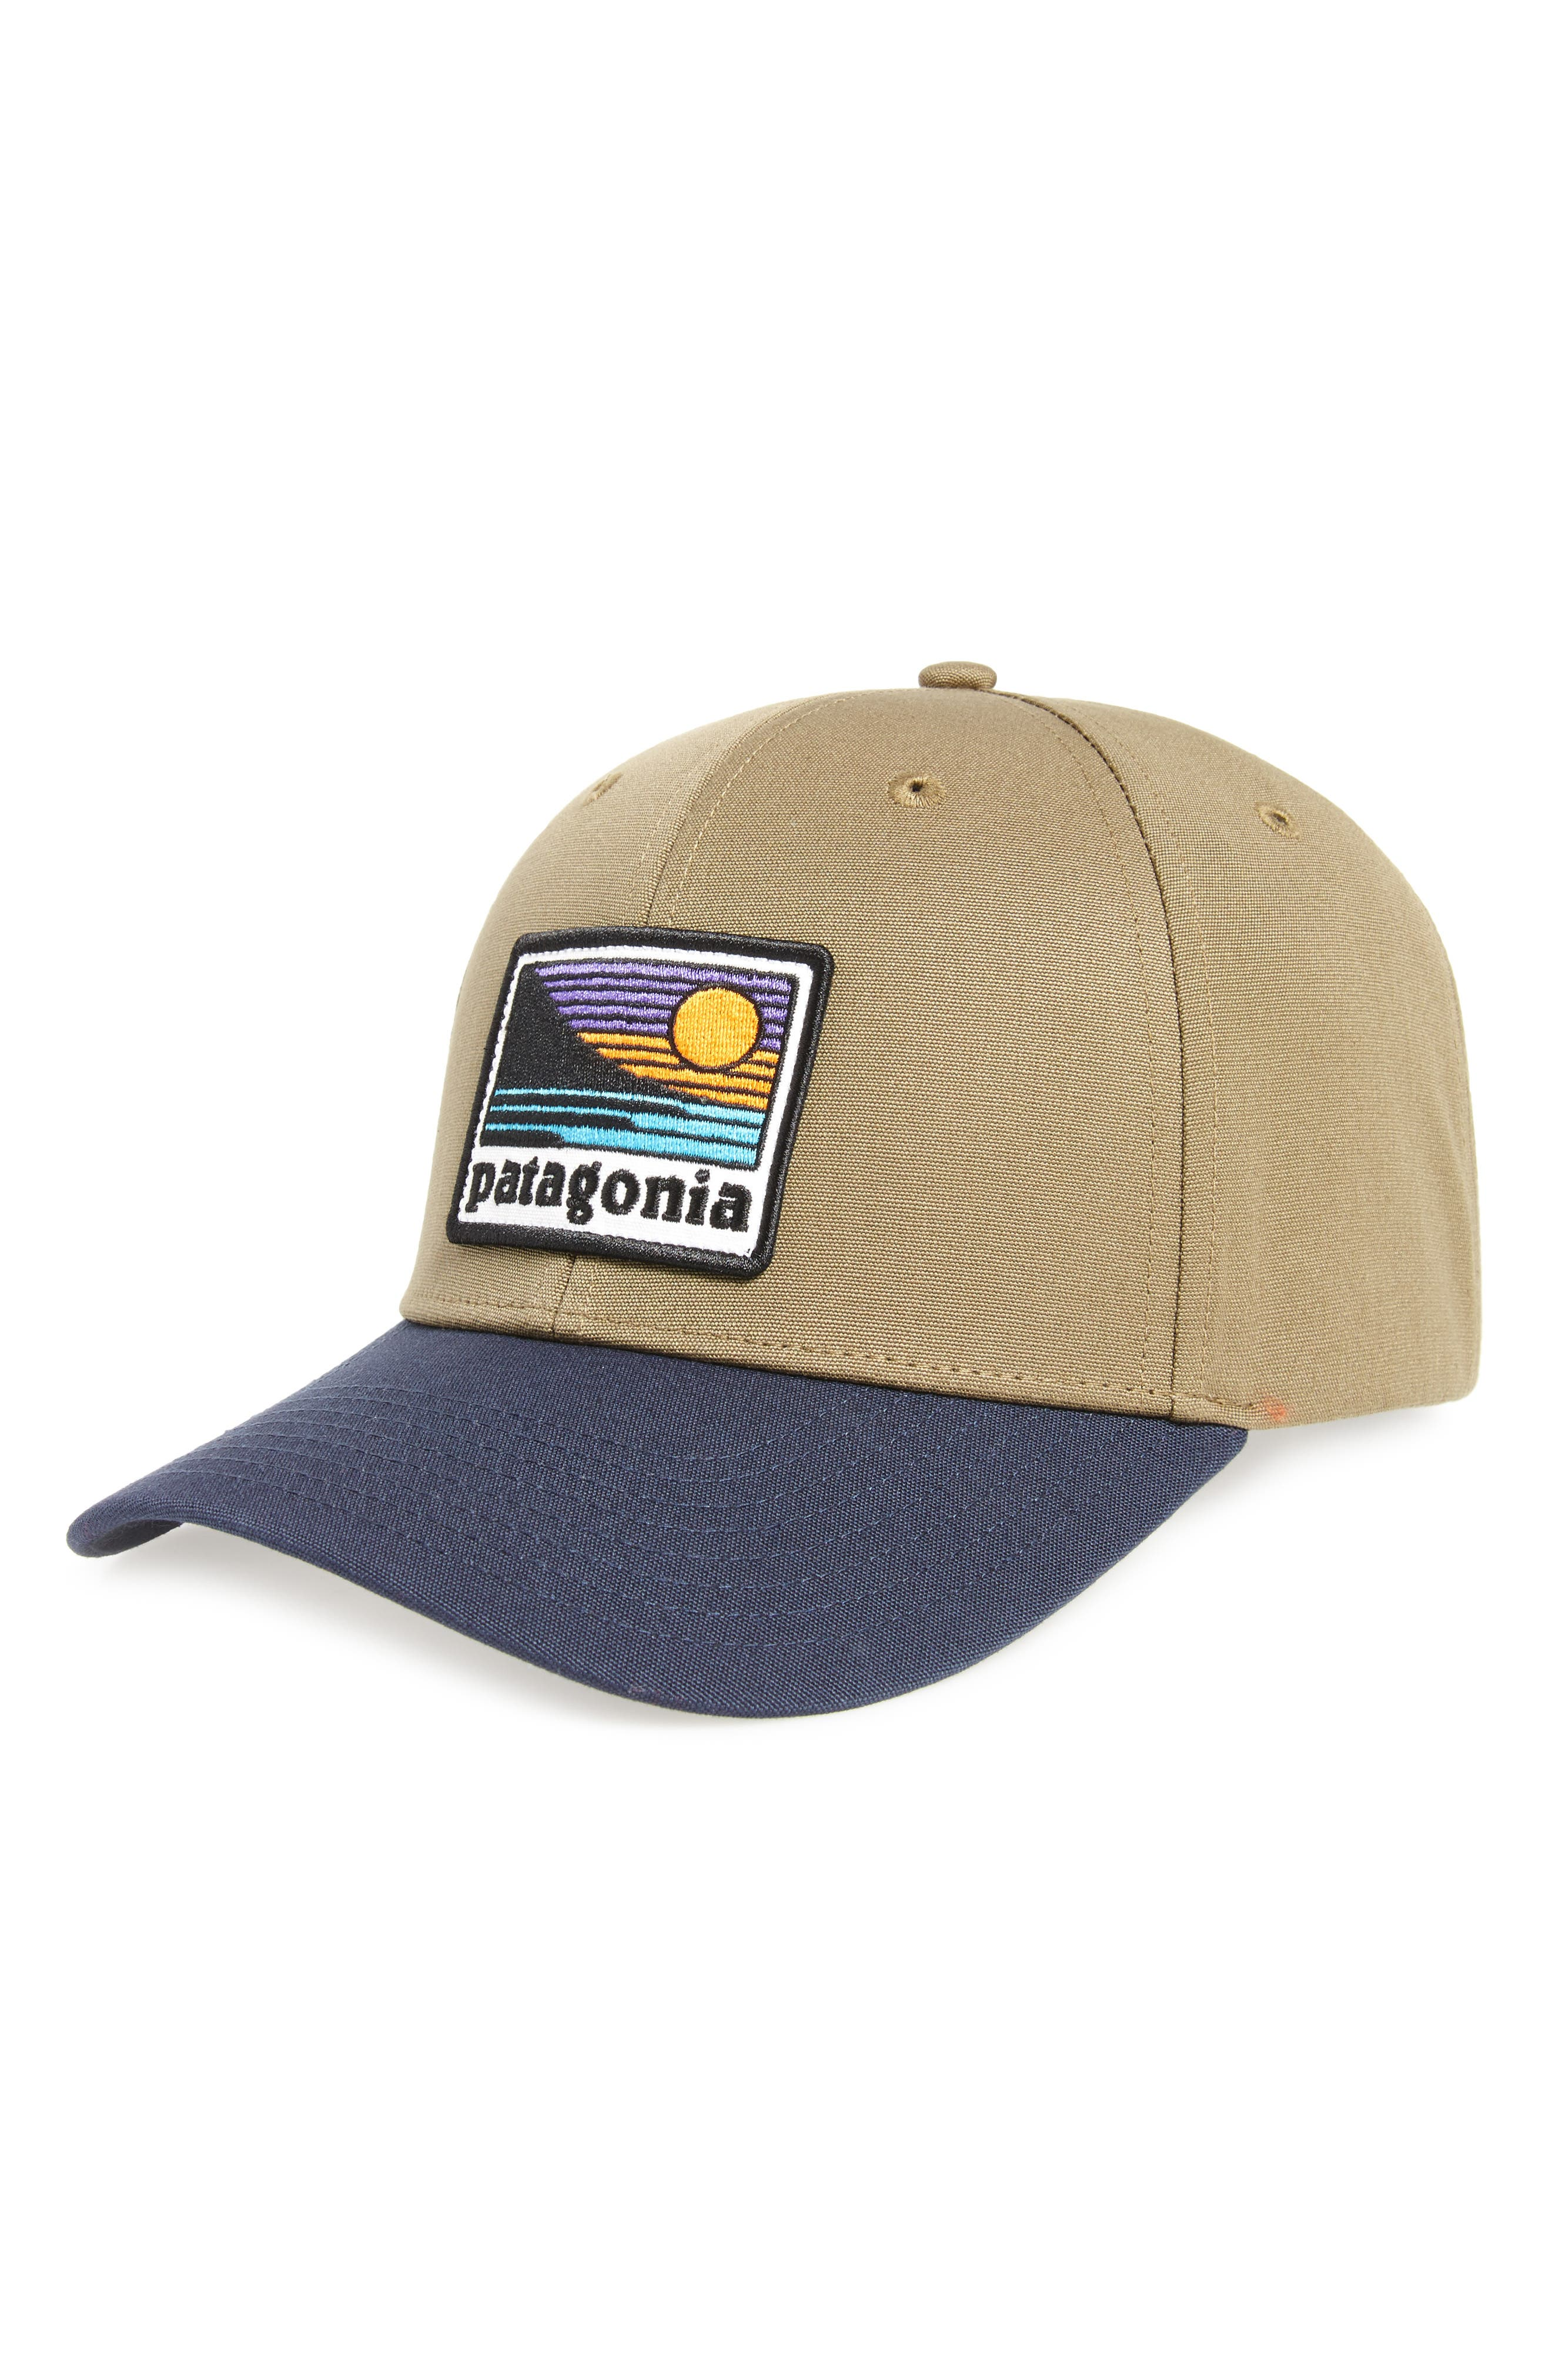 PATAGONIA Up & Out Roger That Trucker Cap